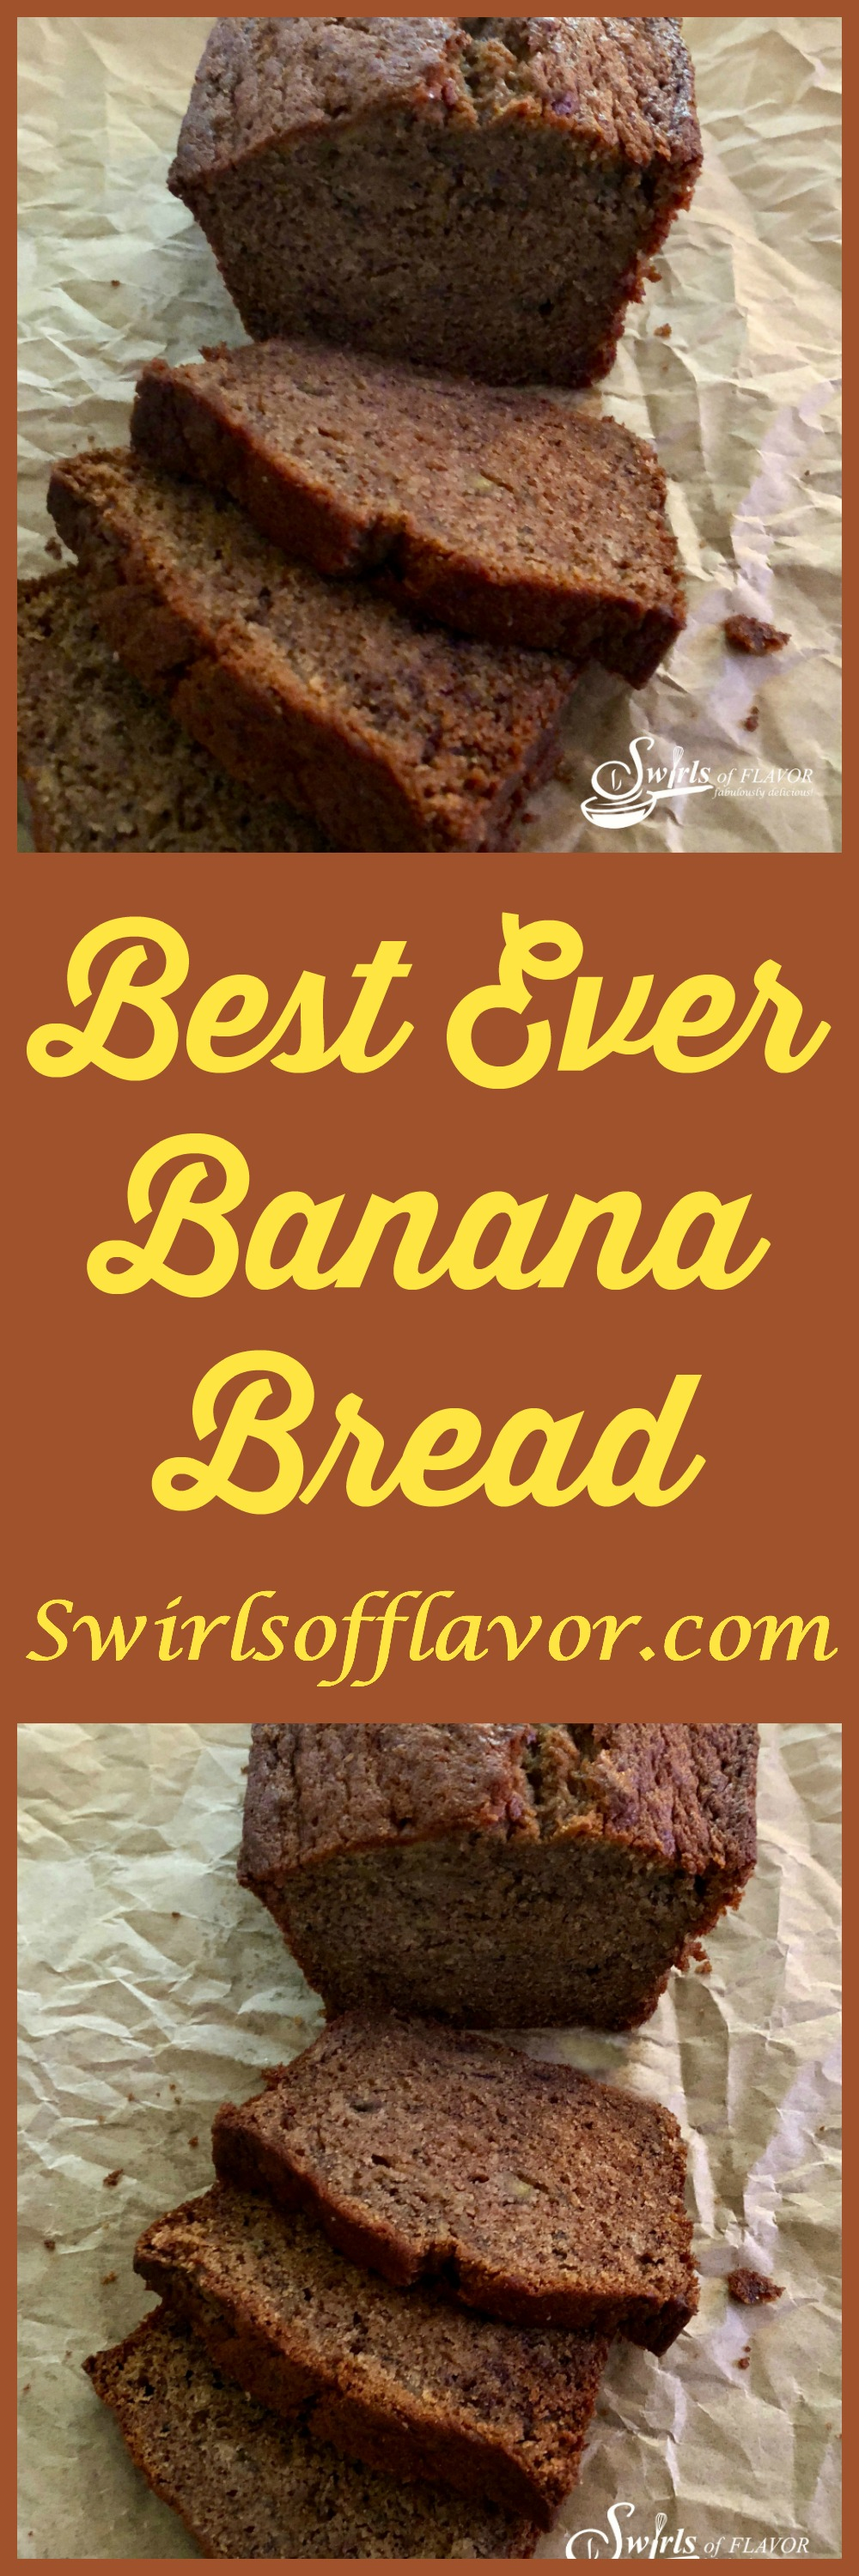 Best Ever Banana Bread is an easy recipe for a buttery banana bread with a hint of cinnamon that's made in one bowl with basic ingredients you most likely have on hand in your kitchen! bananas | banana bread | easy | one bowl | best ever | ripe bananas | quick bread | #swirlsofflavor